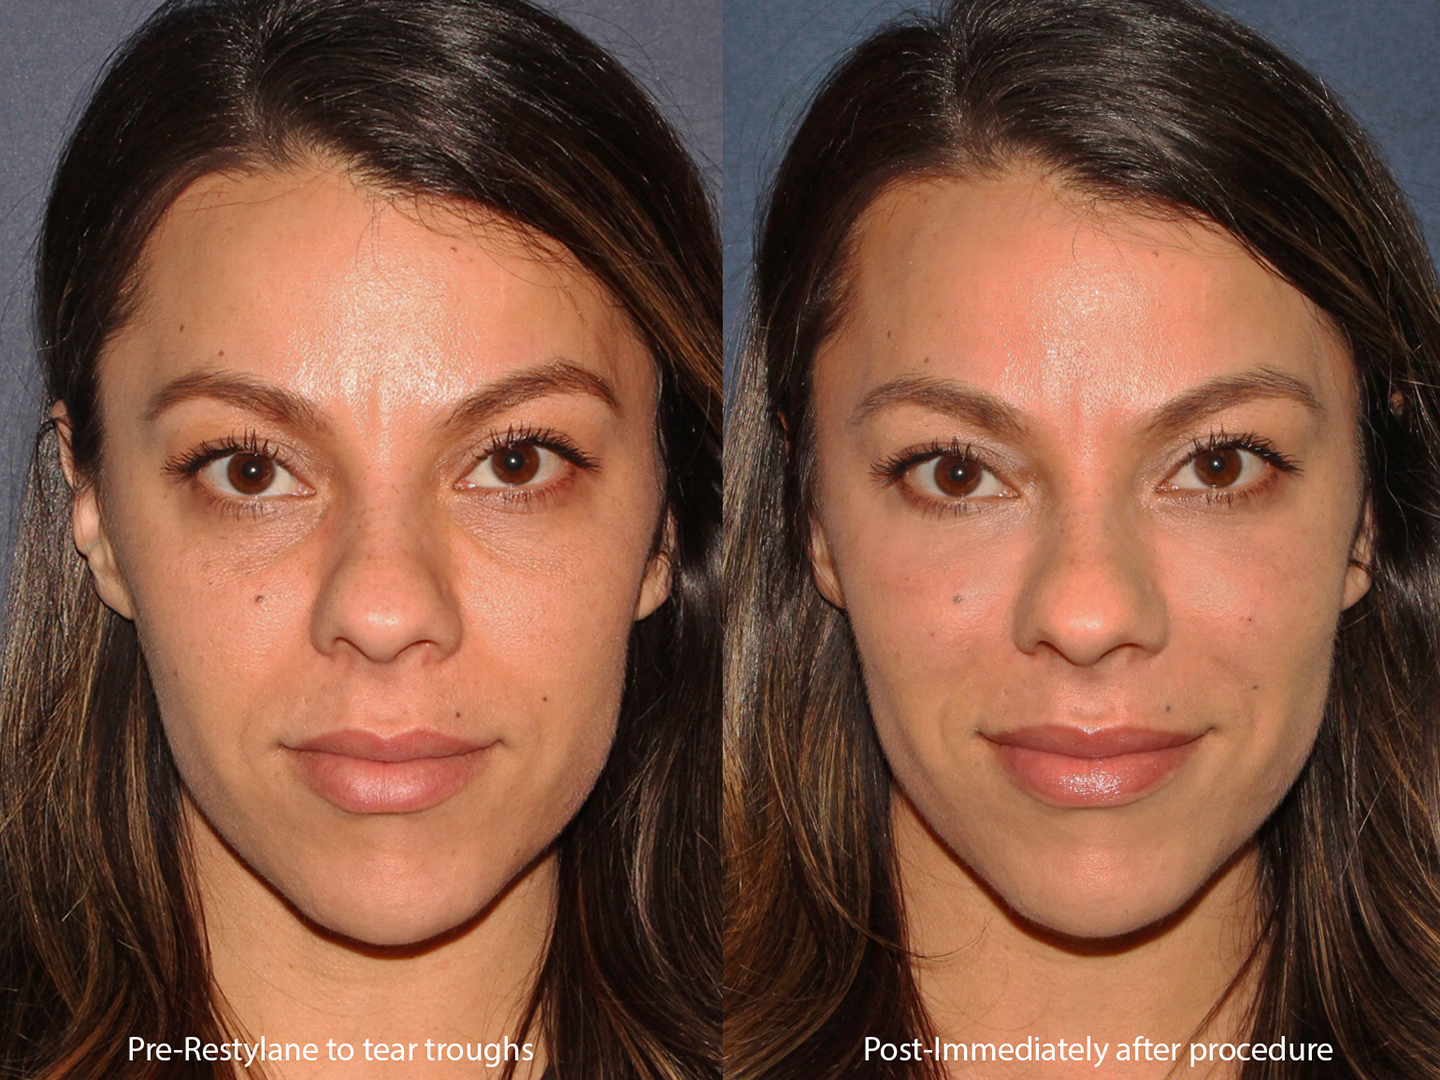 Actual un-retouched patient before and after of Restylane to treat tear troughs by Dr. Butterwick. Disclaimer: Results may vary from patient to patient. Results are not guaranteed.